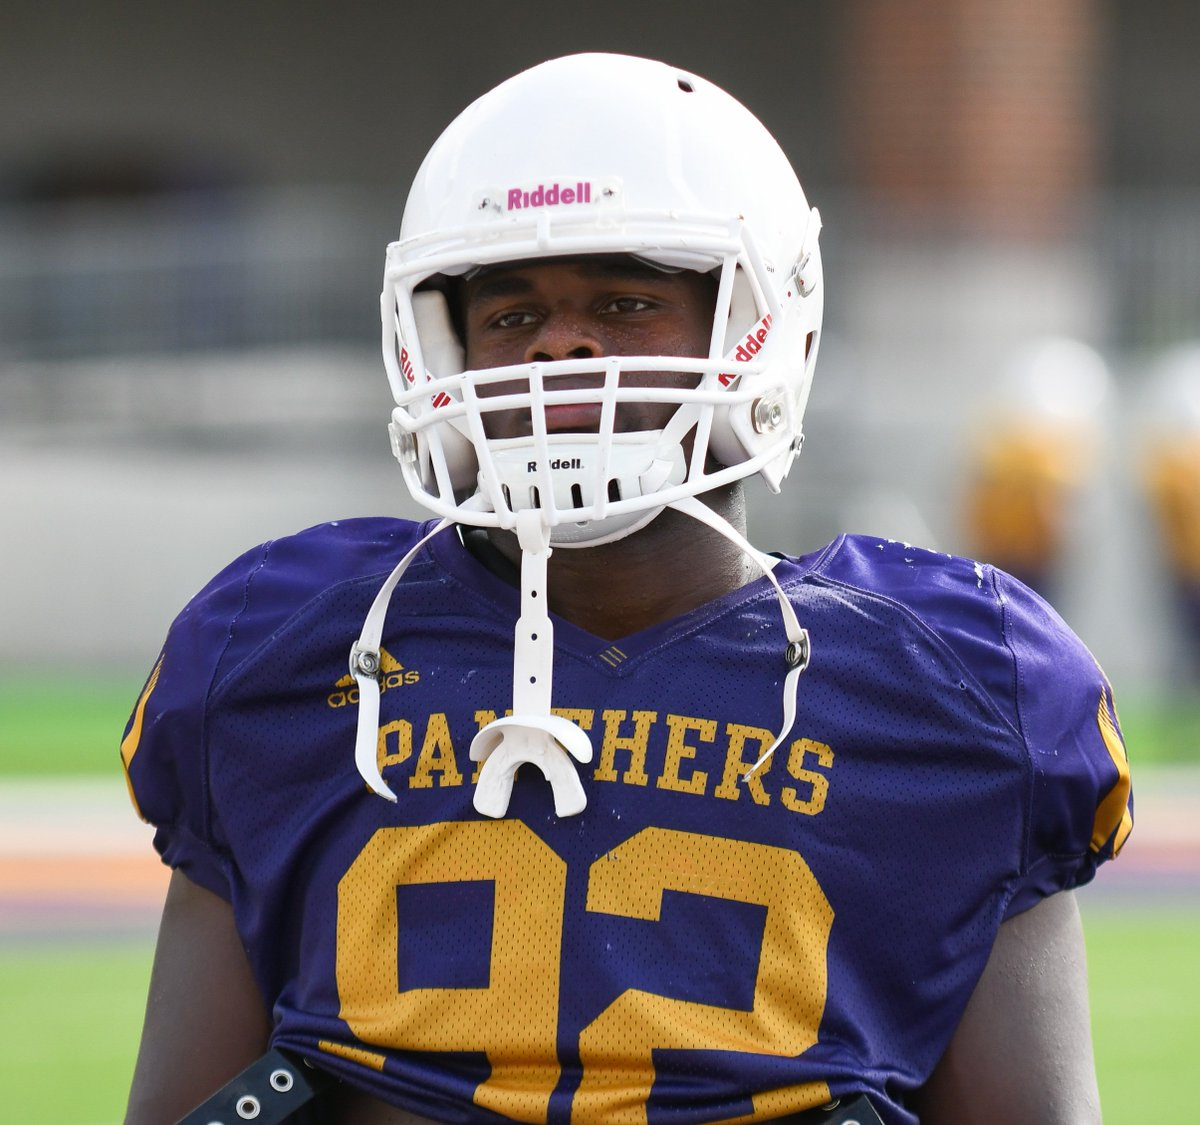 Do you smell it? Can you taste it?  Panther Football returns!!!!  Just wait for it!!!!! 9....8.....7.....6.....5....4....3.....2.....1!!!!!!!!! The Panthers are coming to a stadium near you!!!!! #SpotTheBall #pvamufootball<br>http://pic.twitter.com/3cwfMkjYkU